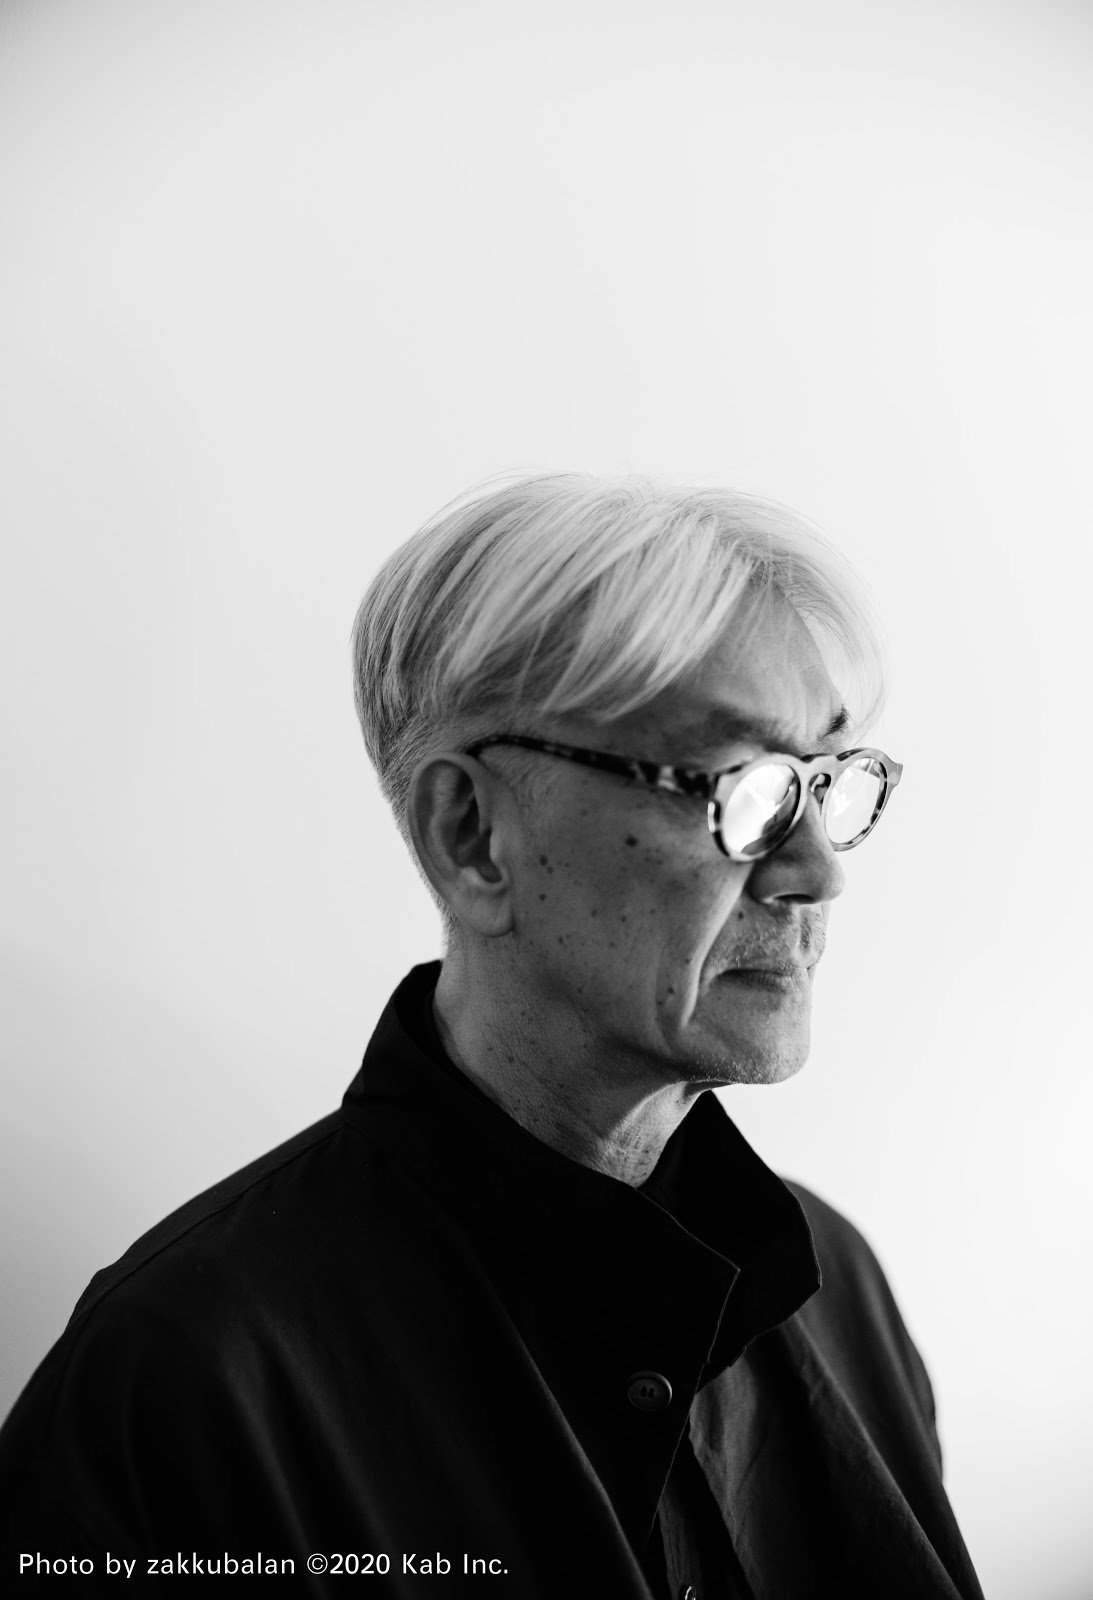 First review of Ryuichi Sakamoto's forthcoming song 'fragments, time' praises the earthy, musical sound of breaking pottery